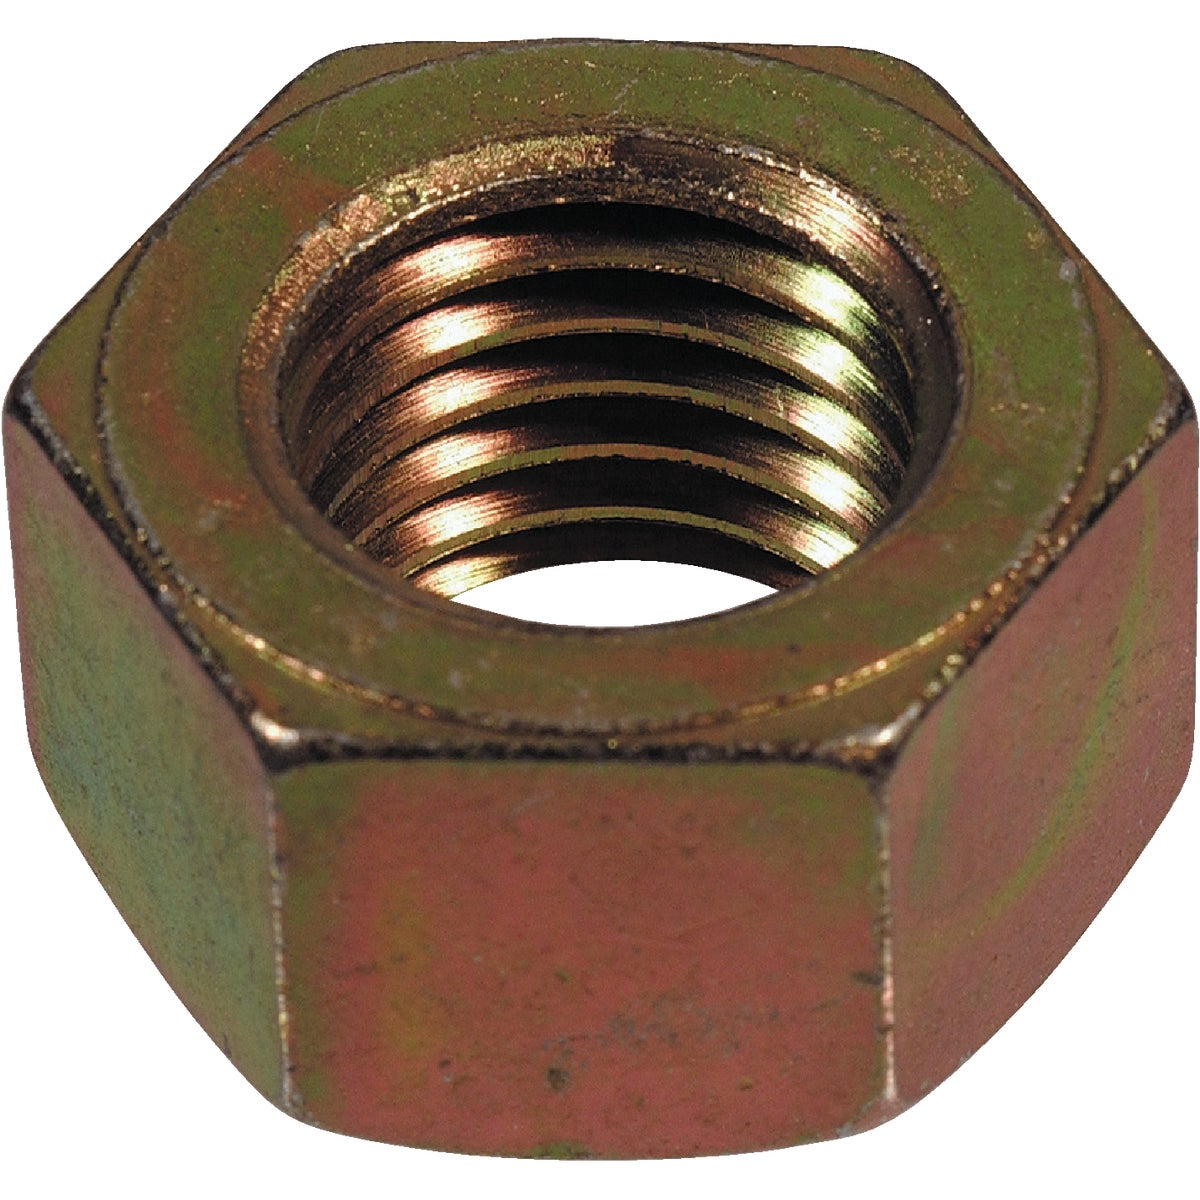 3/4-10 YC G8 HEX NUT - 180418 by Hillman Fastener